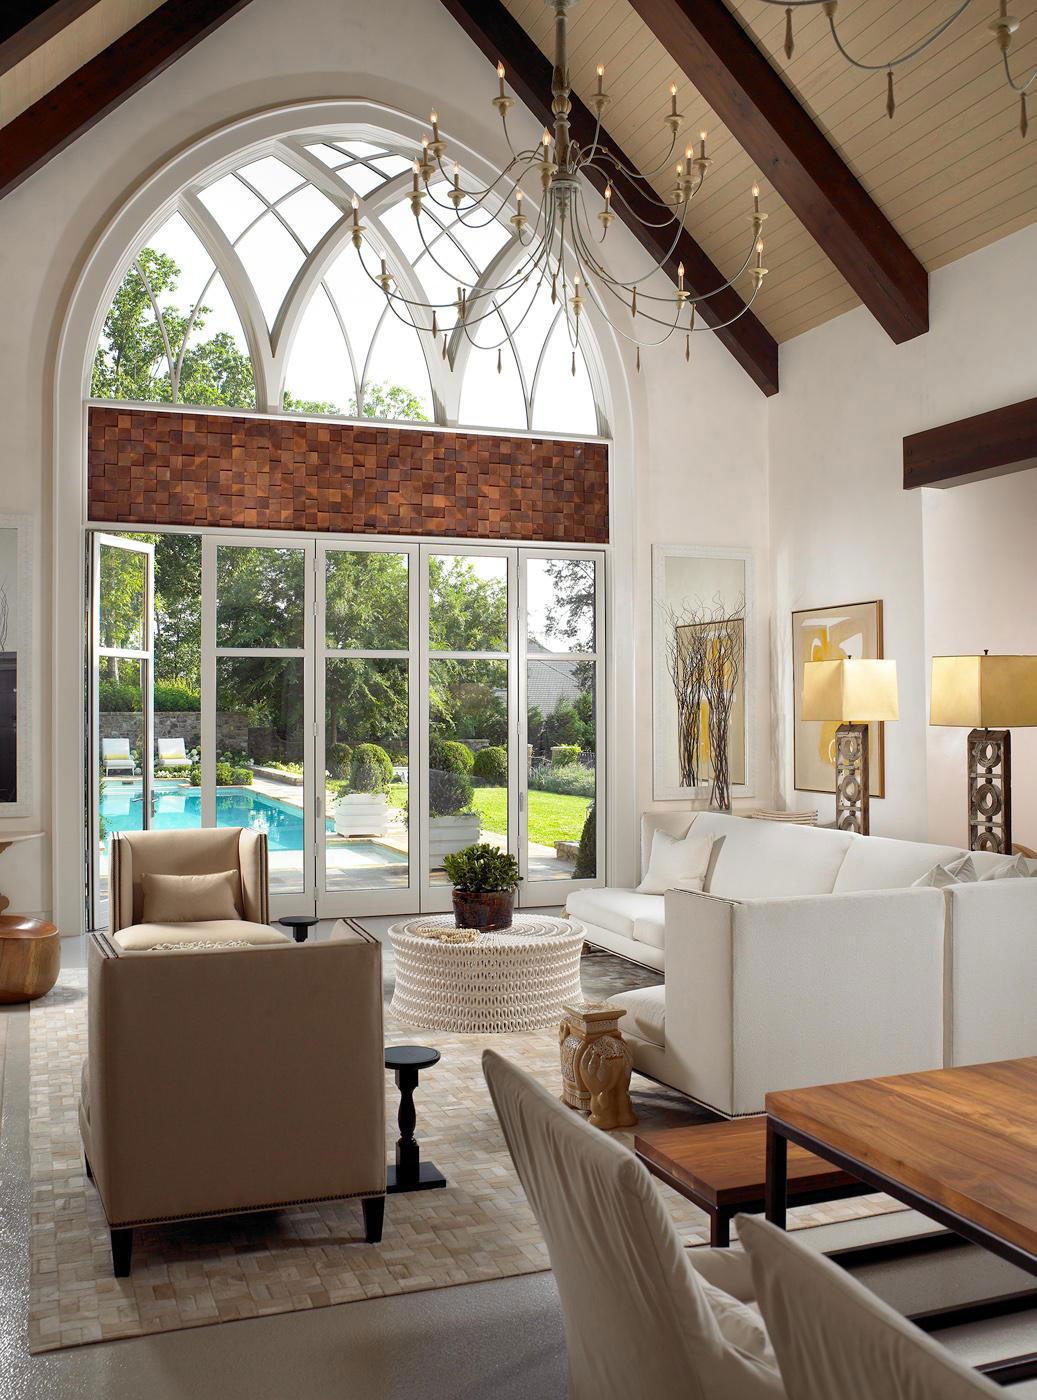 Pool House & Wine Cellar by Beckwith Interiors (2)